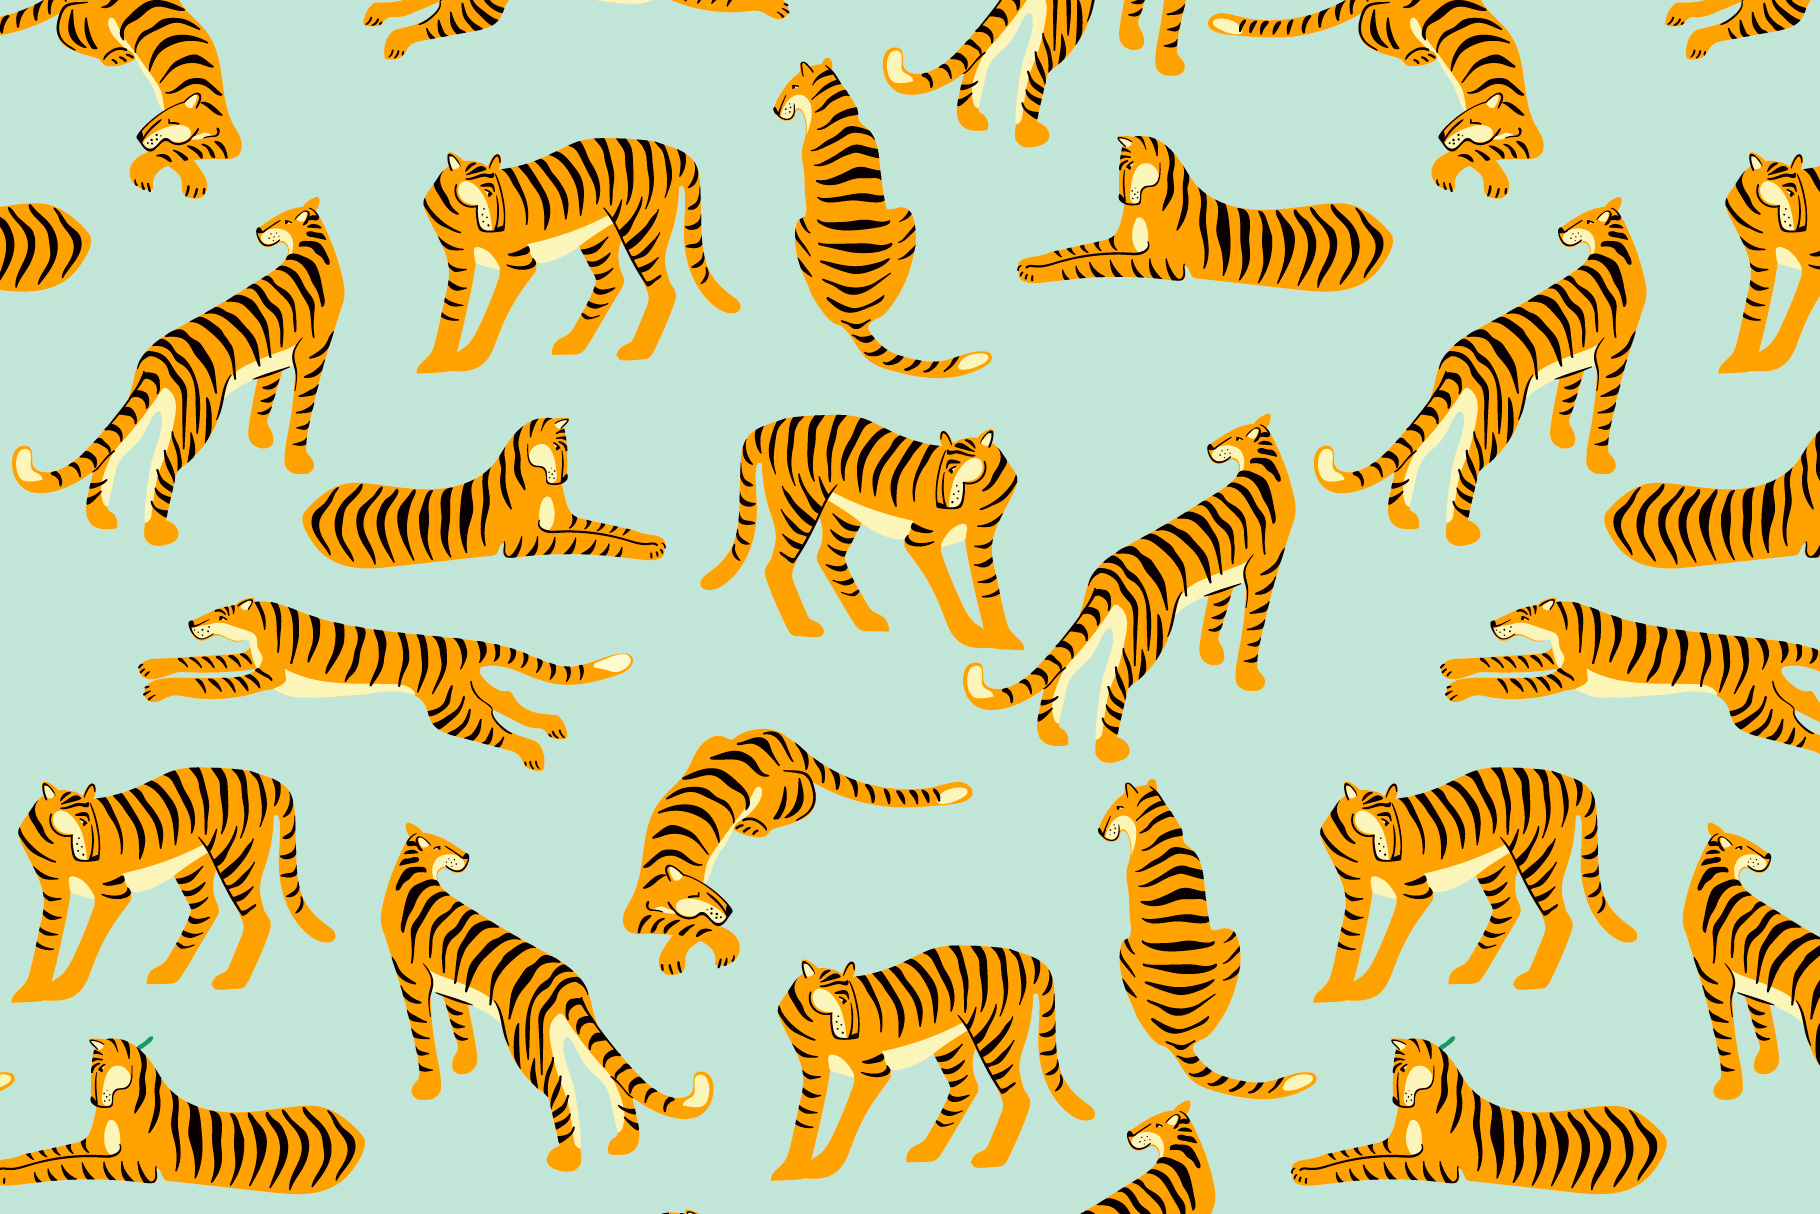 Tiger collection. Patterns & clipart example image 9